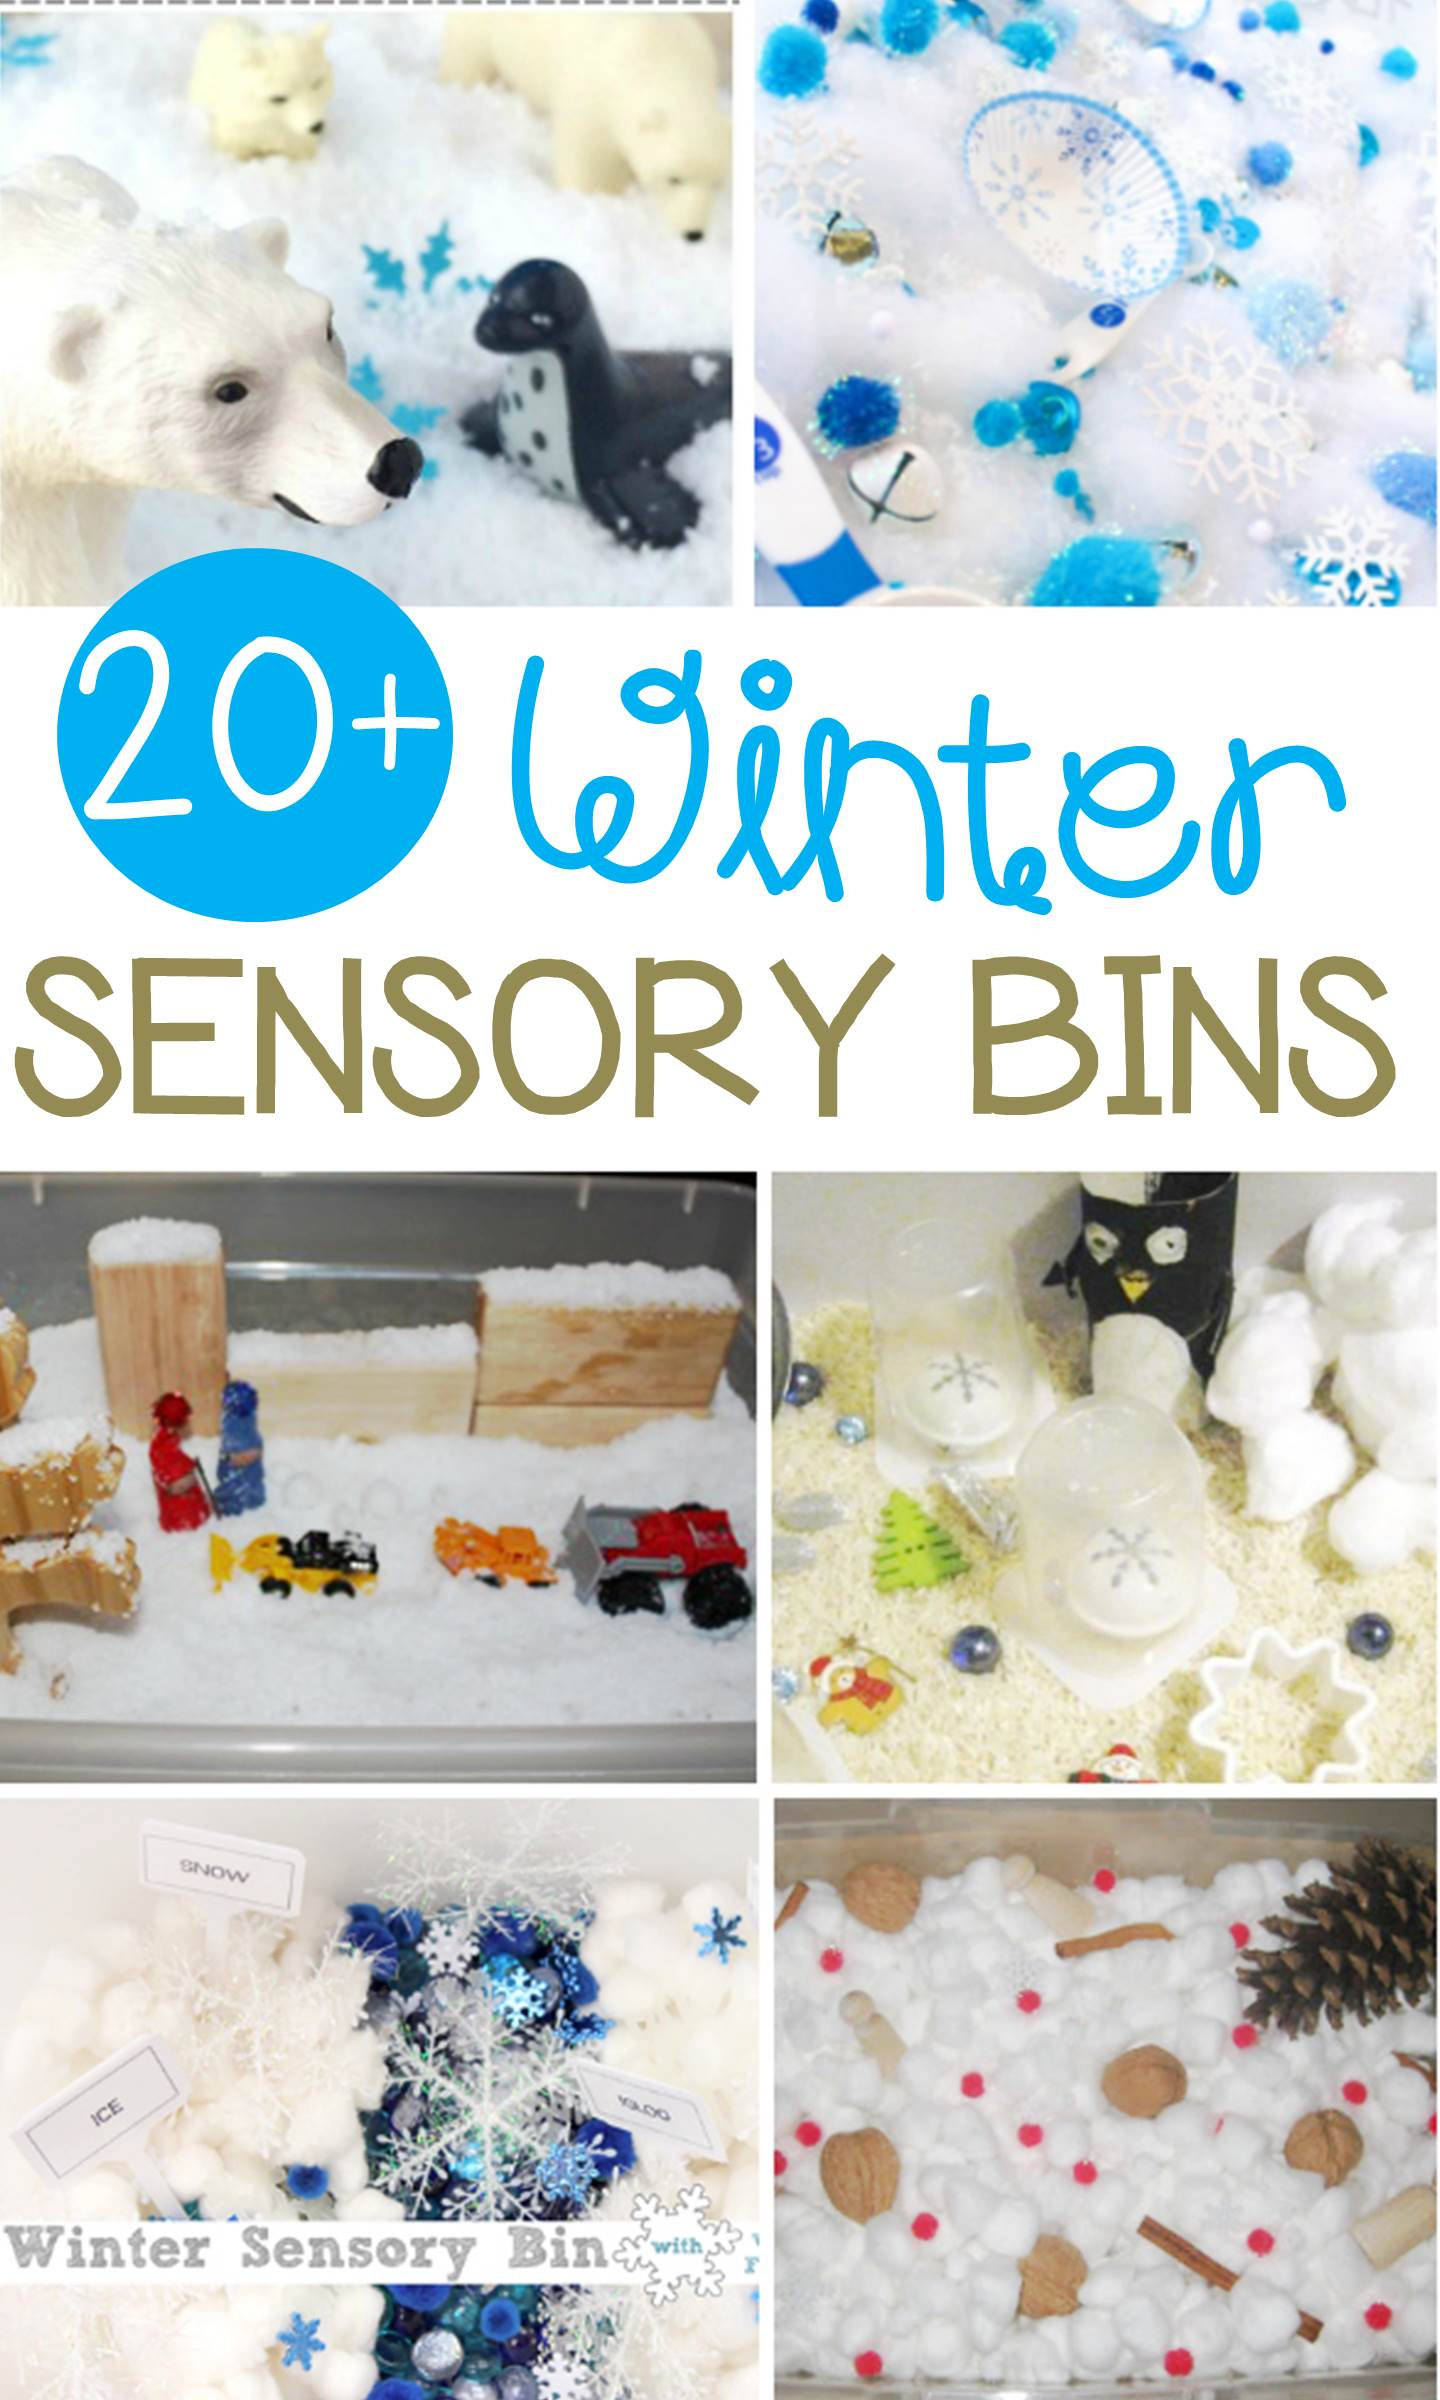 Sensory bins are great for kids and so engaging for sensory play! These winter sensory bins for kids are the perfect hands-on kids' winter activity!